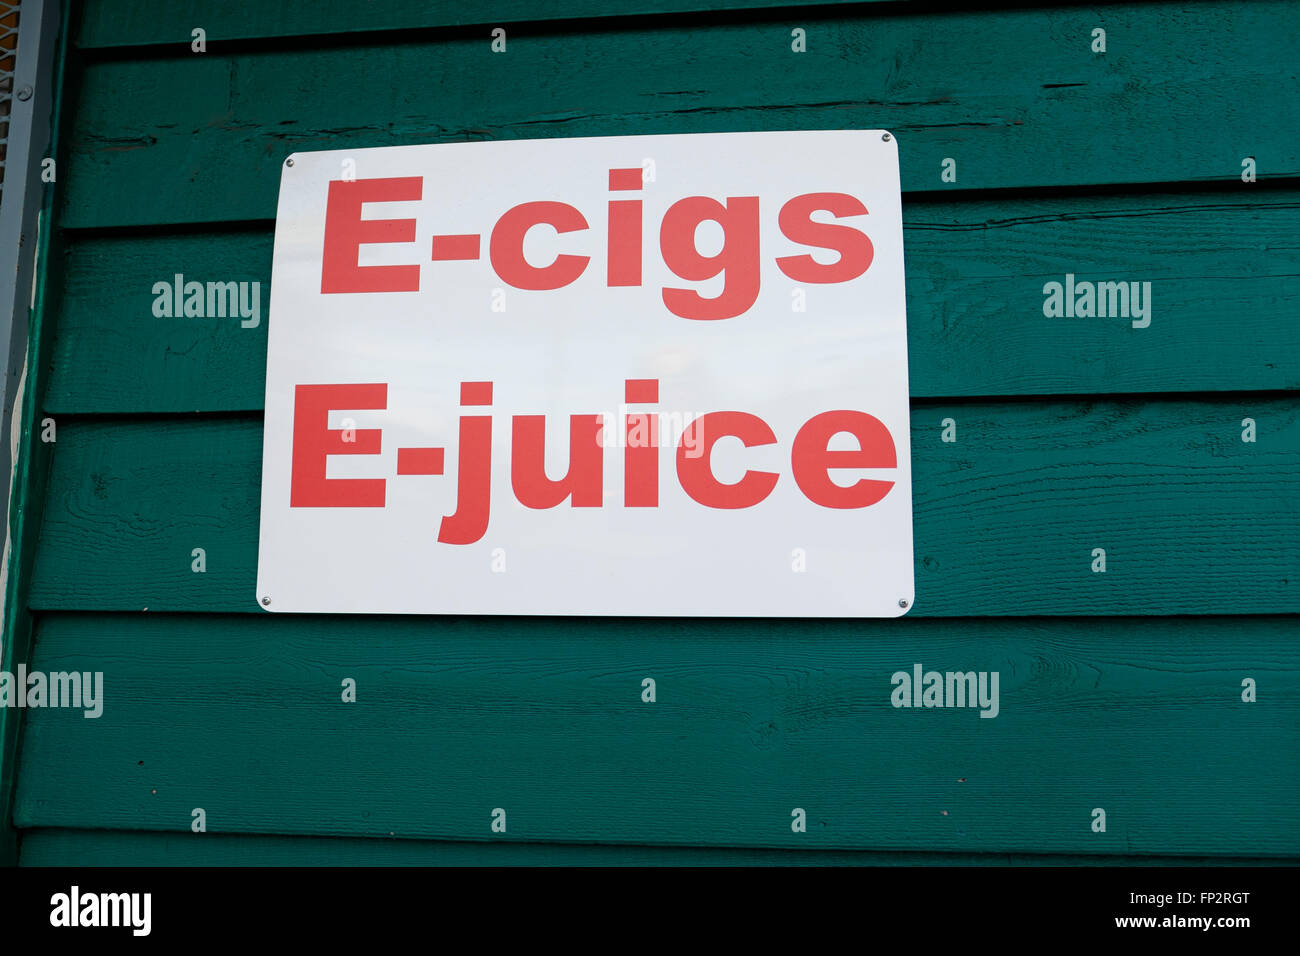 Sign on a green building says e-cigs and e-juice showing customers what they sell at this new vaping store. - Stock Image